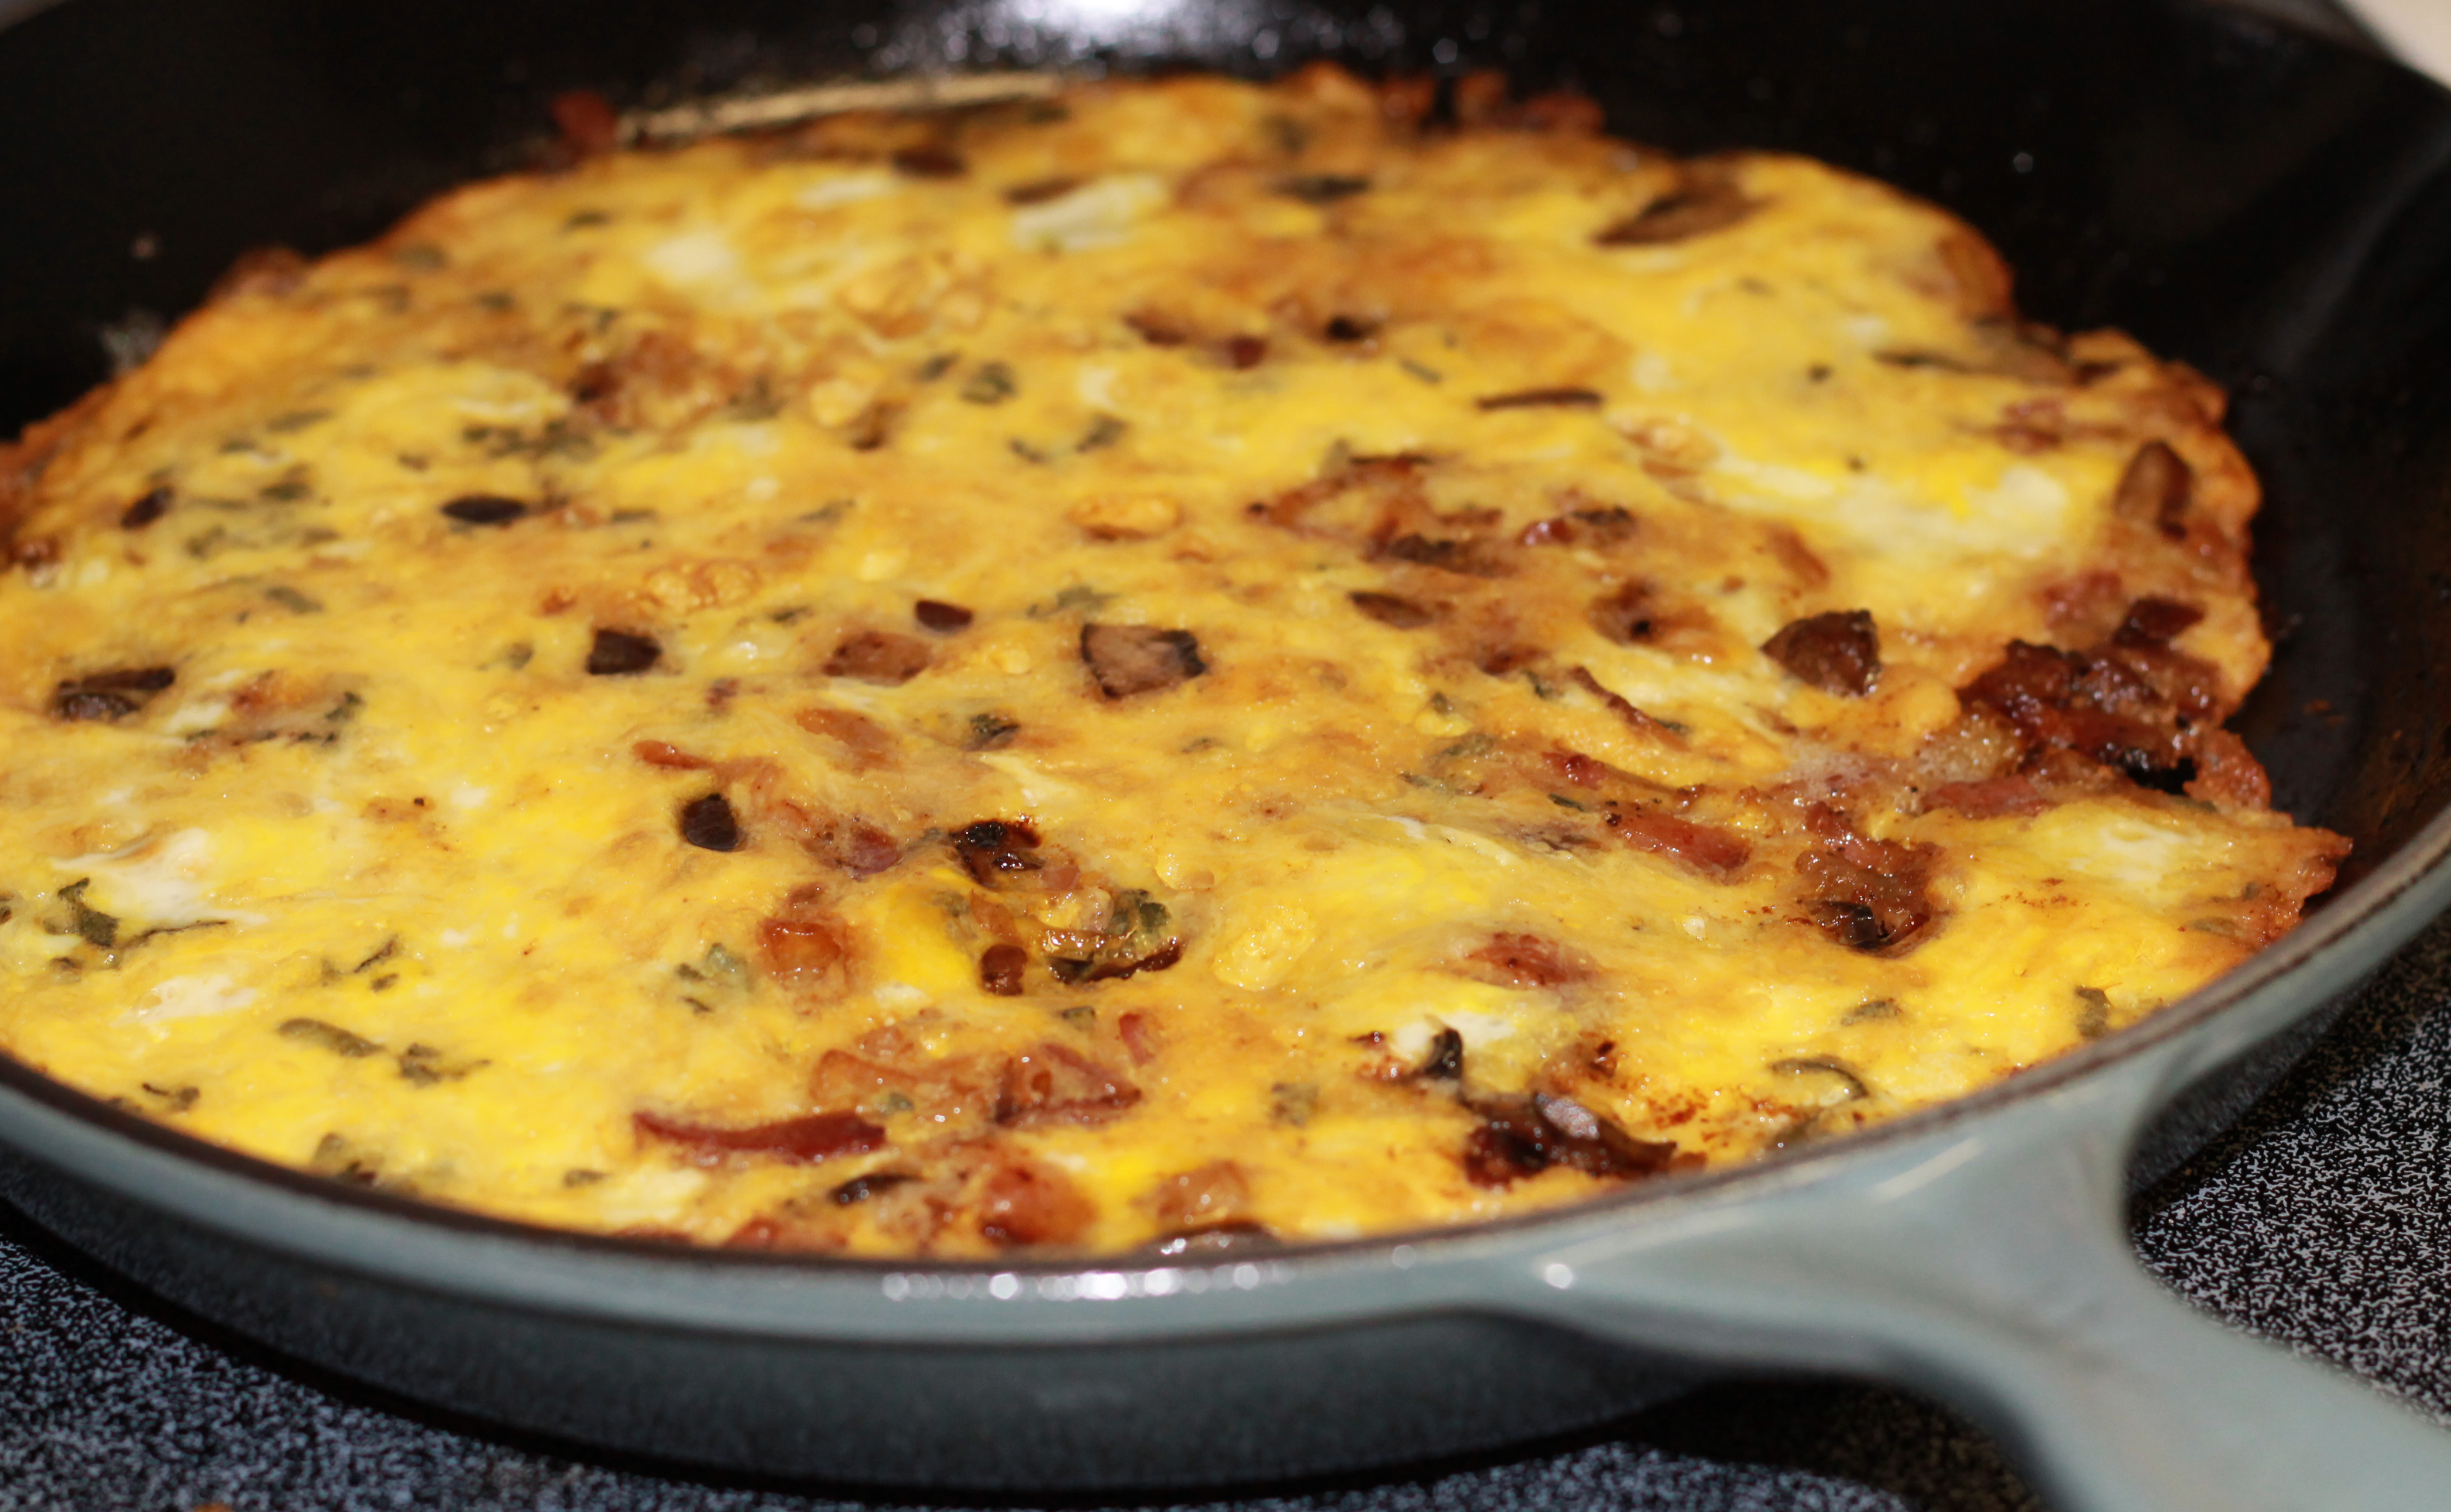 ... ado back to that frittata I made for this sweet husband of mine